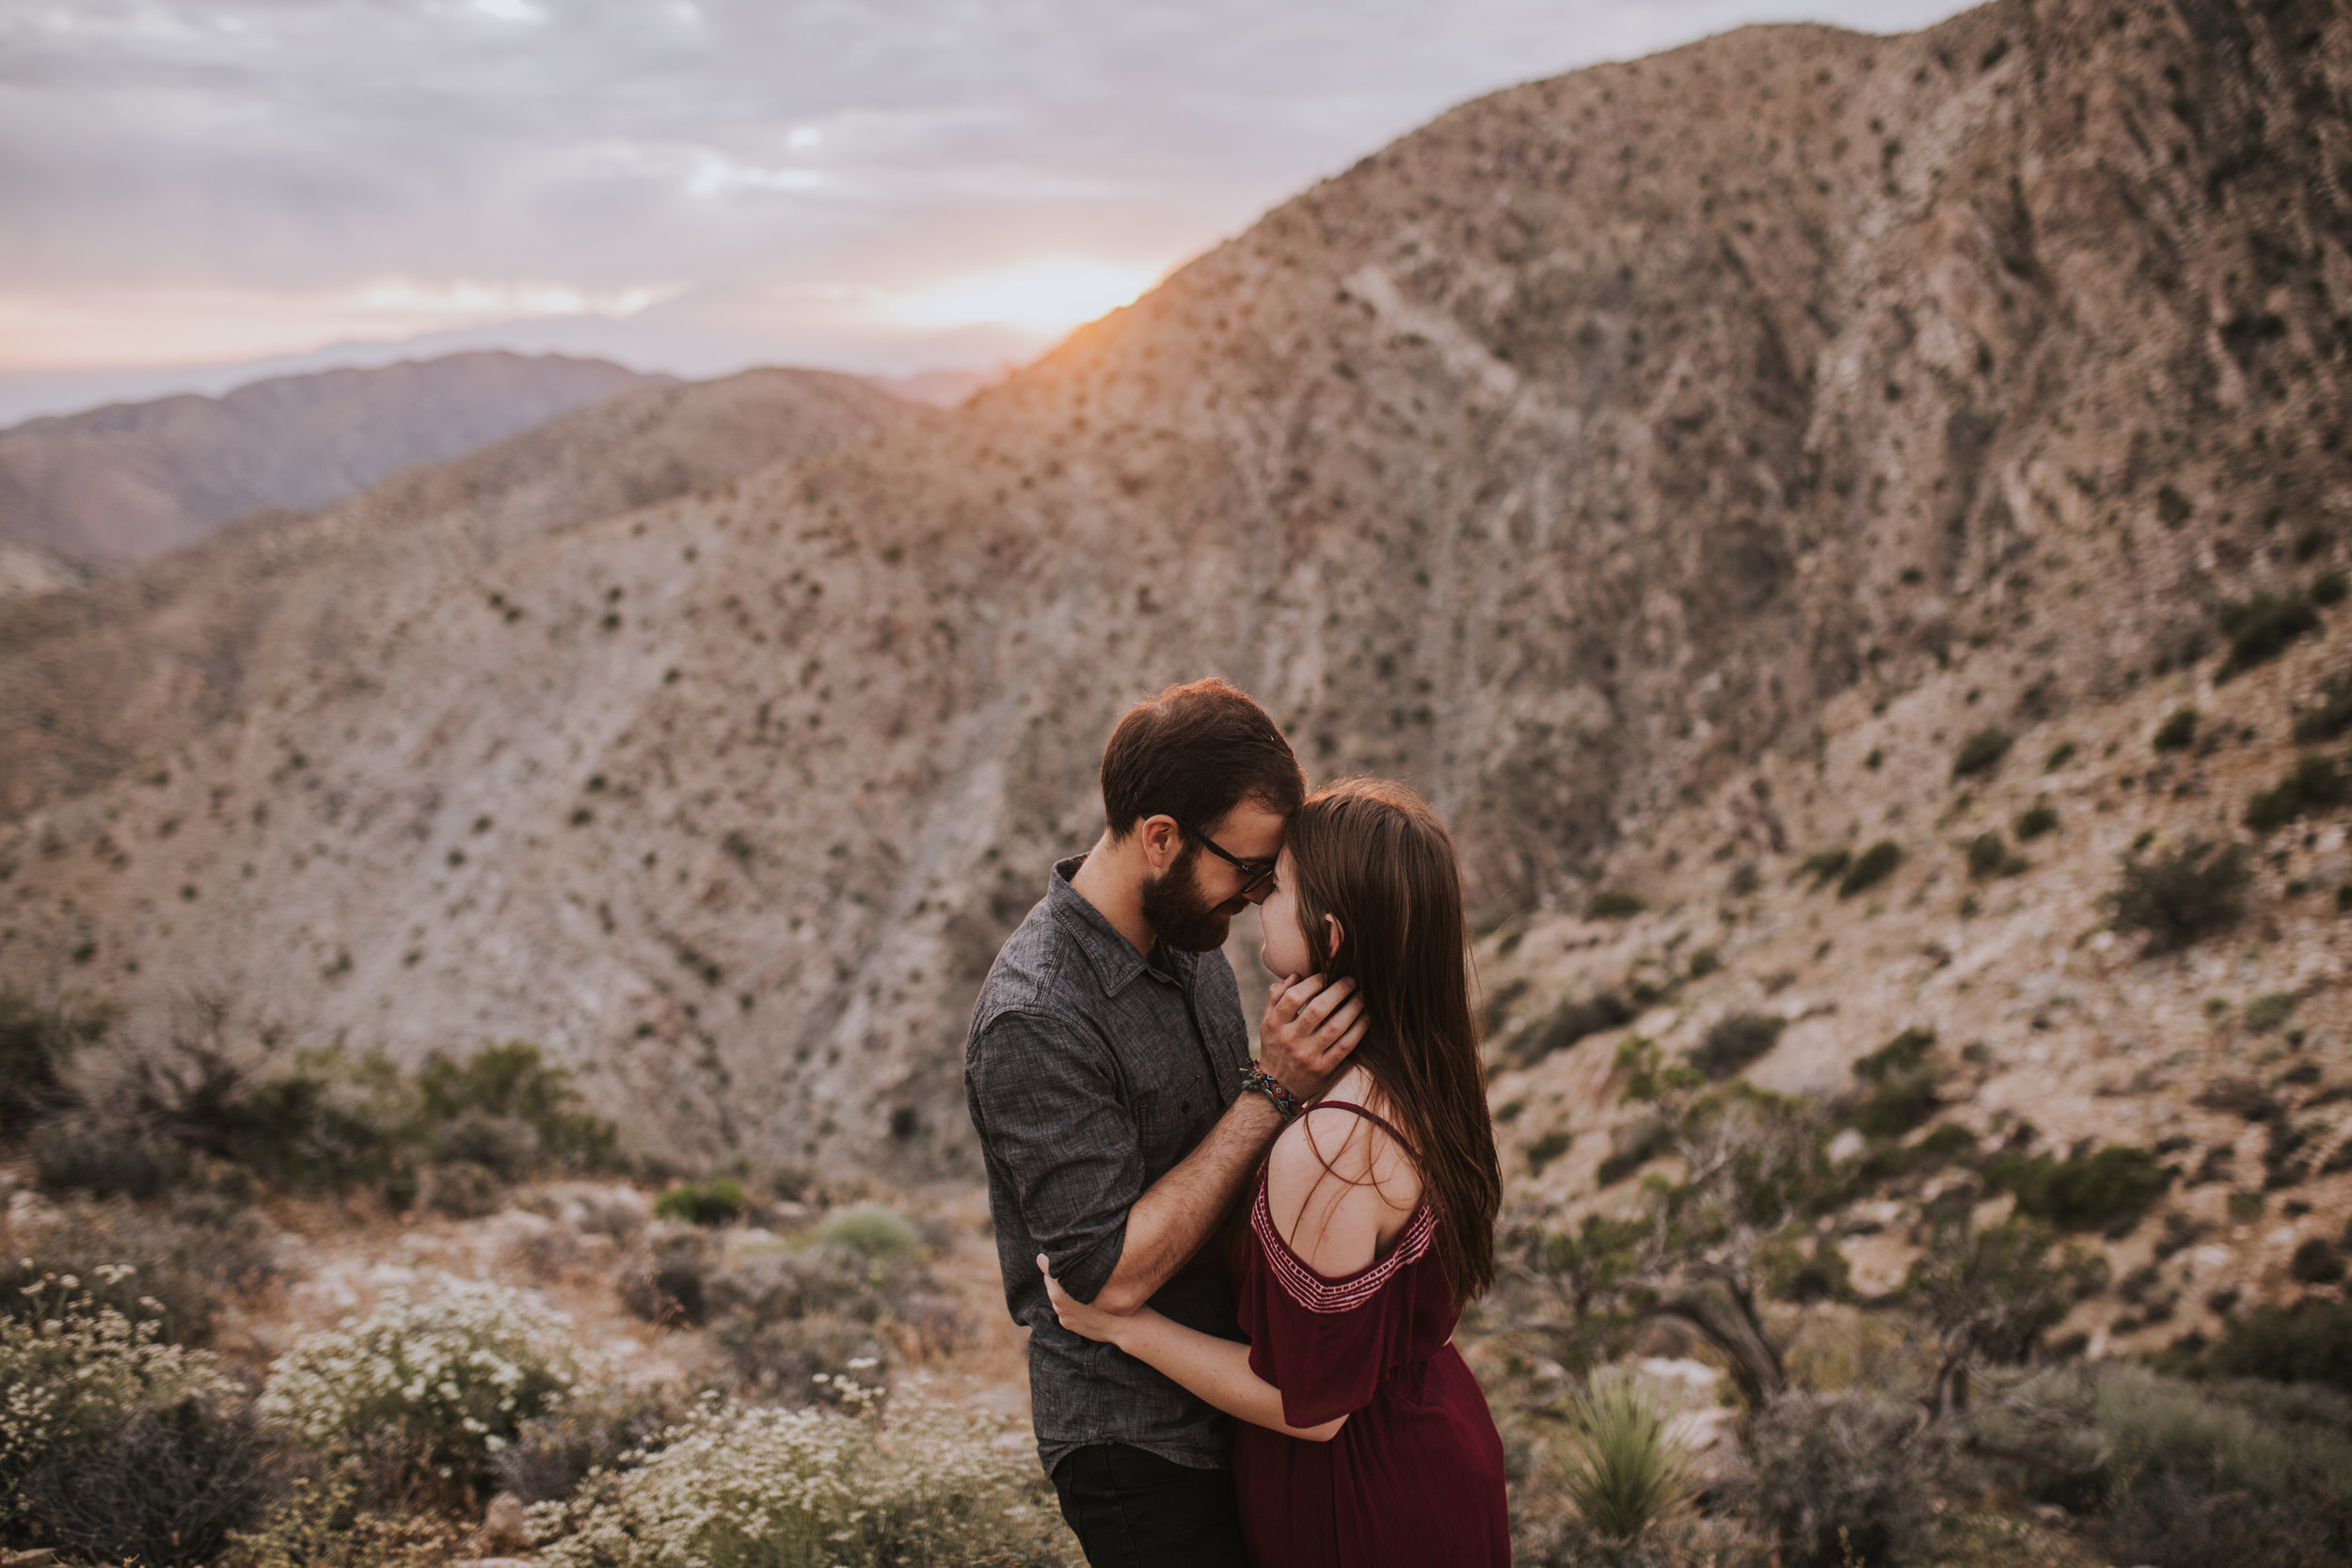 Kiara at Indwell Weddings, is beyond amazing. We had an incredible time during this casual photoshoot during our vacation and I am in absolute love with how it turned out! Plus, so happy we got to meet both Kiara and David!  - ASHLEY AND ANDREW, MAY 2017